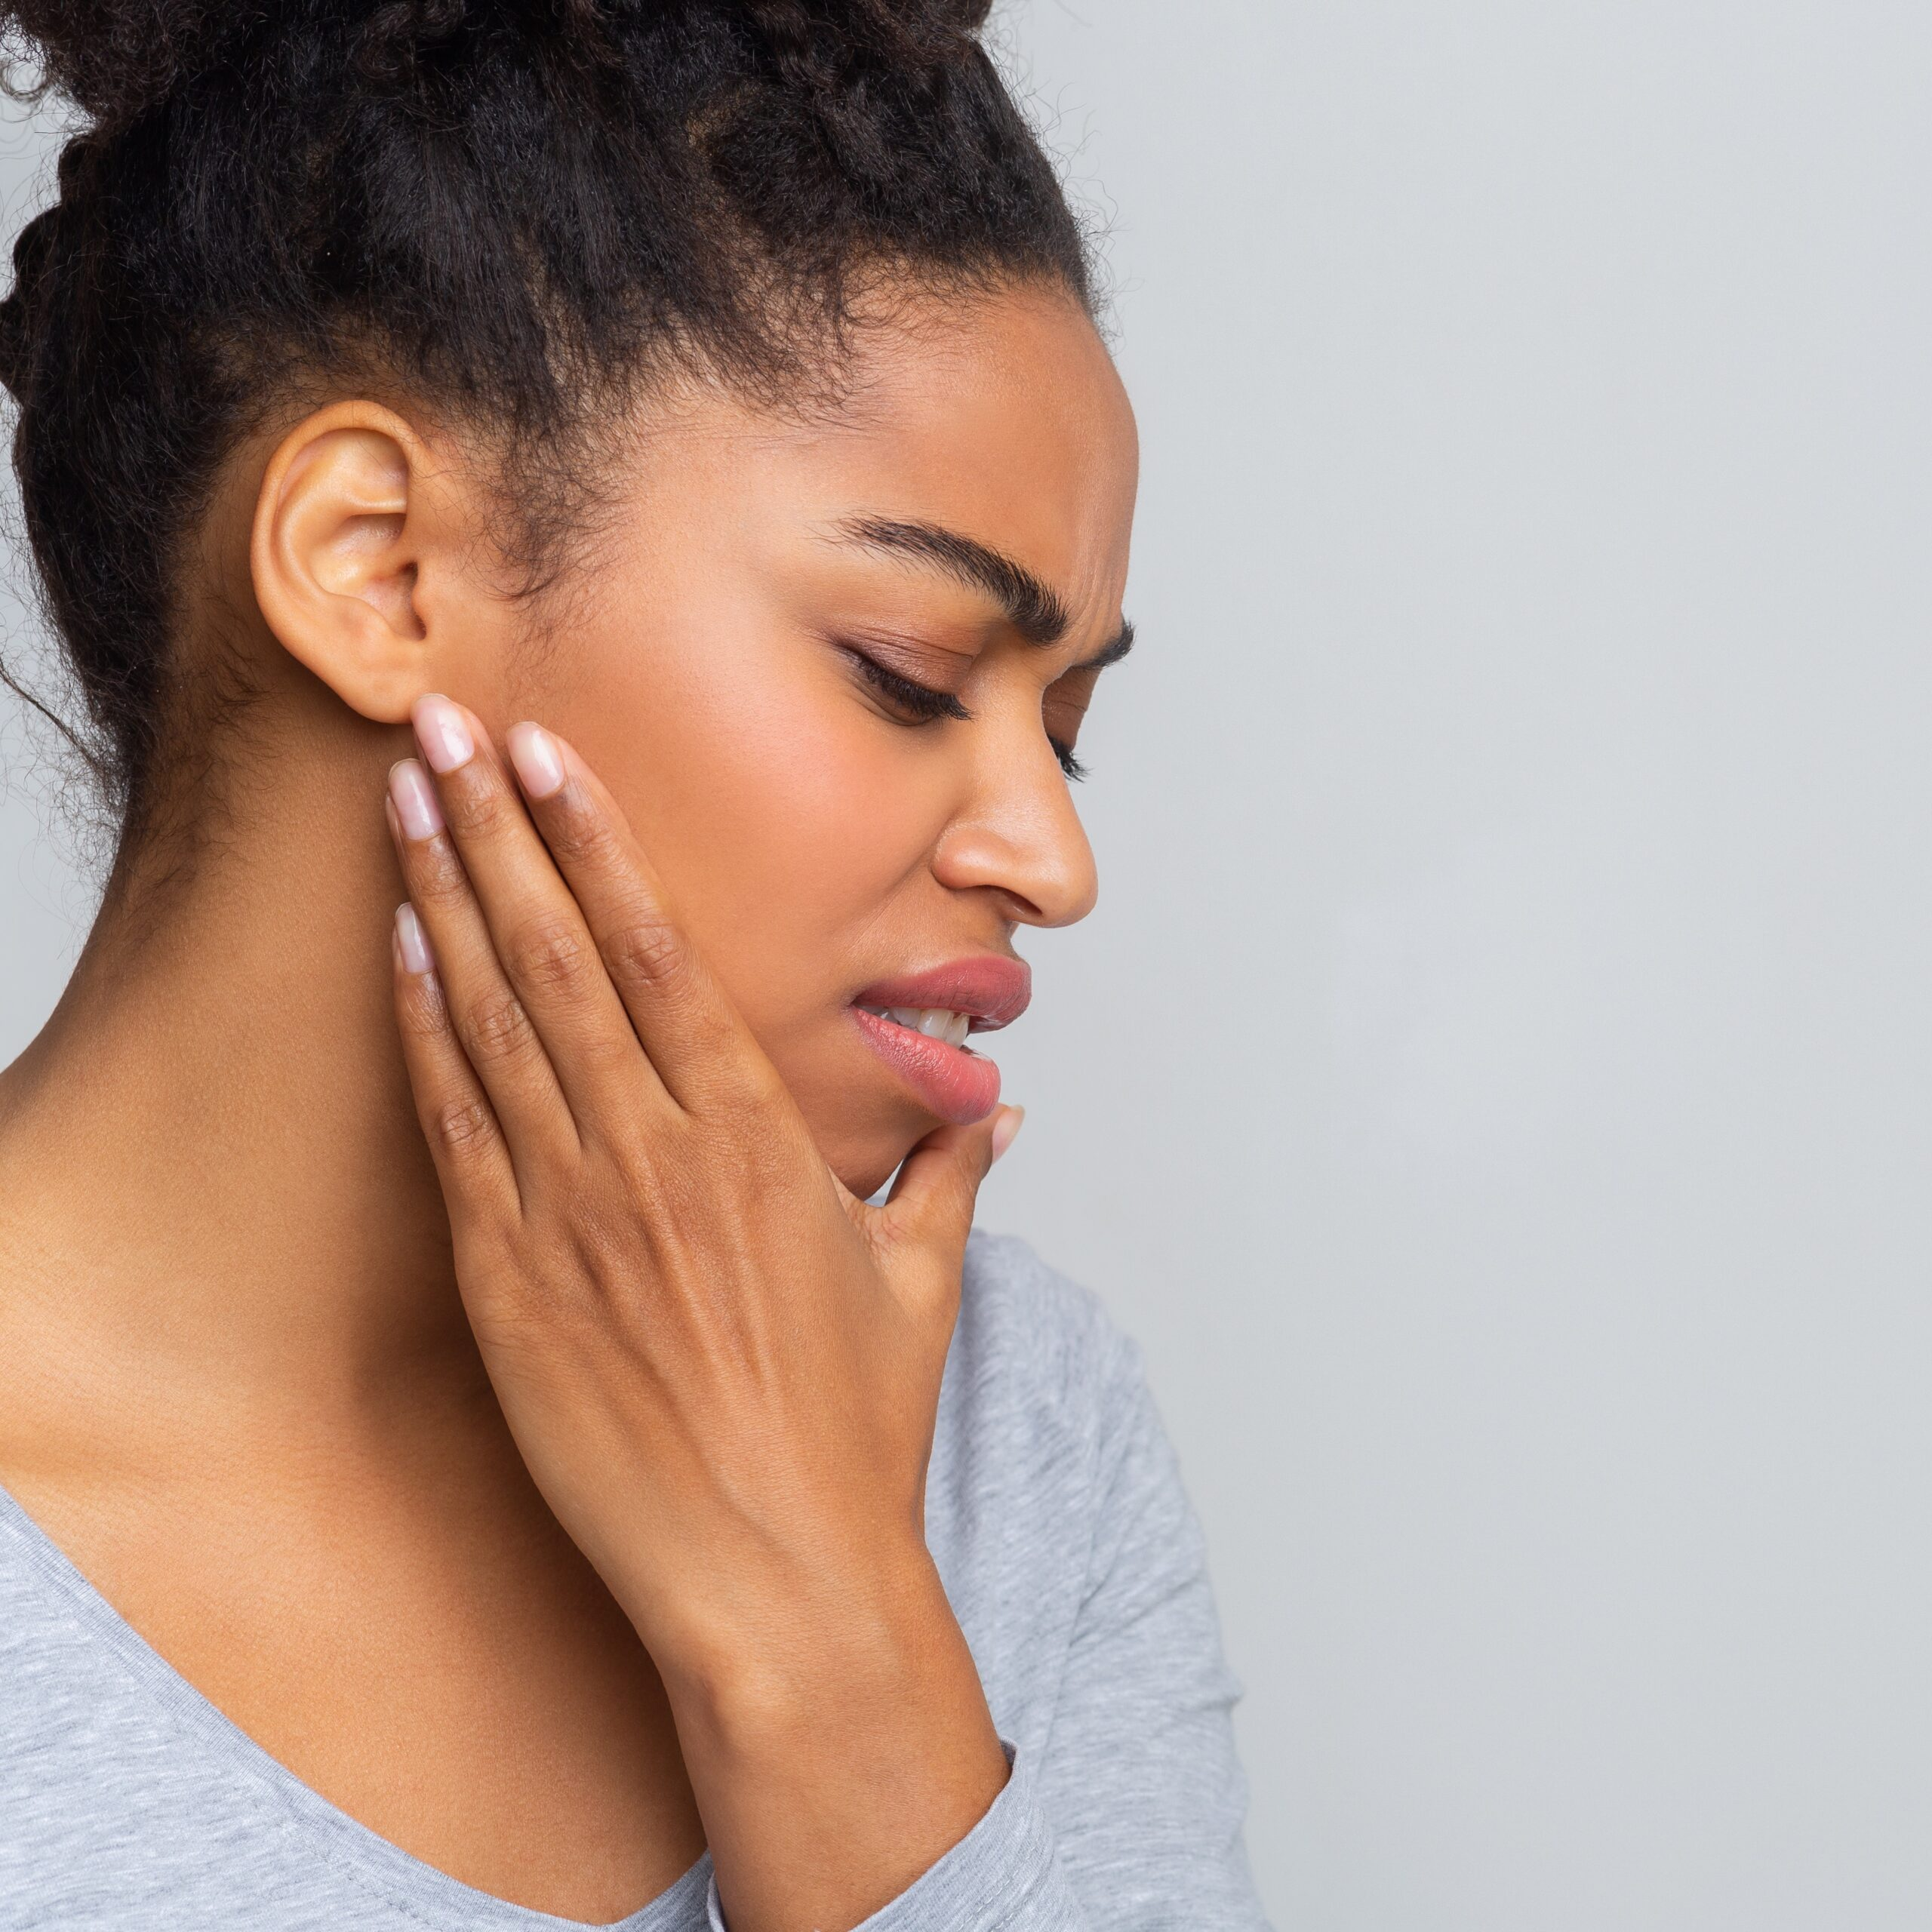 Managing Persistent Jaw Pain